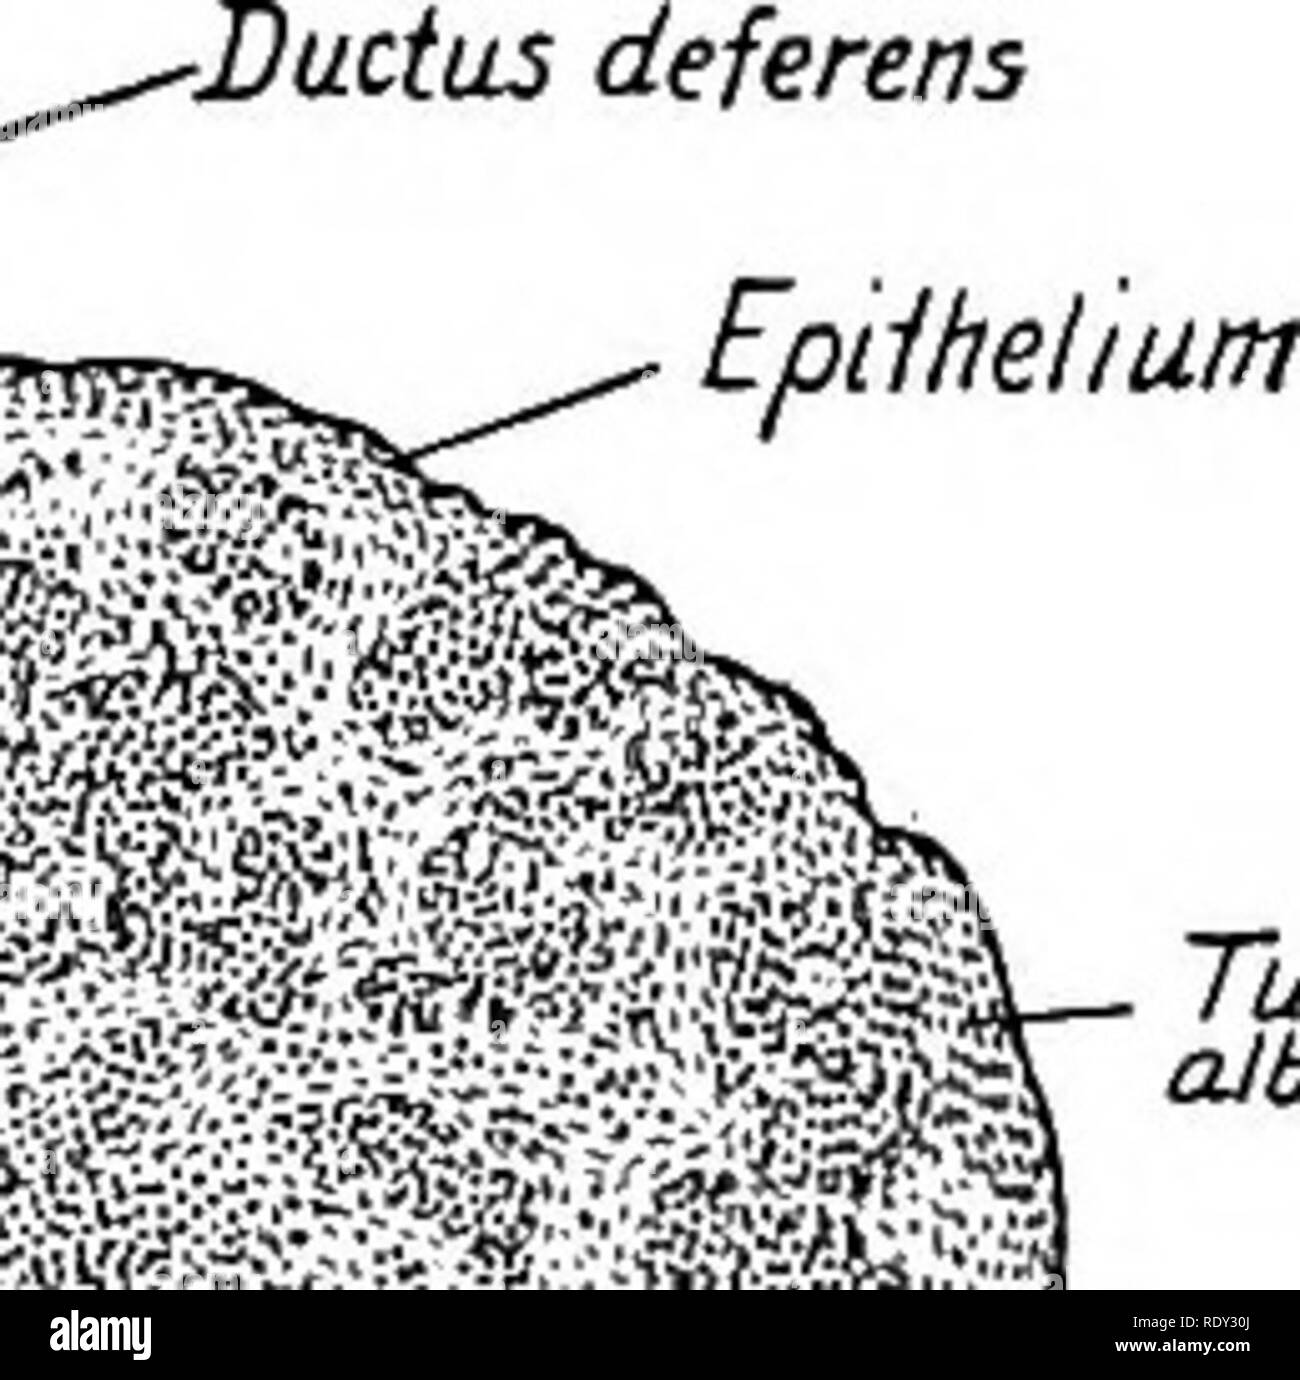 . A laboratory manual and text-book of embryology. Embryology. THE GENITAL GLANDS AND DUCTS—OVARY 221 tubules anastomose and form the tubuli contorti. Their proximal portions remain straight as the tubuli recti. The rete testis becomes a network of small tubules which finally unite with the collecting tubules of the mesonephros (see p. 225). The primitive genital cells of the testis cords form the spermatogonia of the spermatic tubules and from these at puberty are developed the spermatogonia (p. 24). The indifferent cells of the tubules become the sustentacular cells (of Sertoli) of the adult Stock Photo